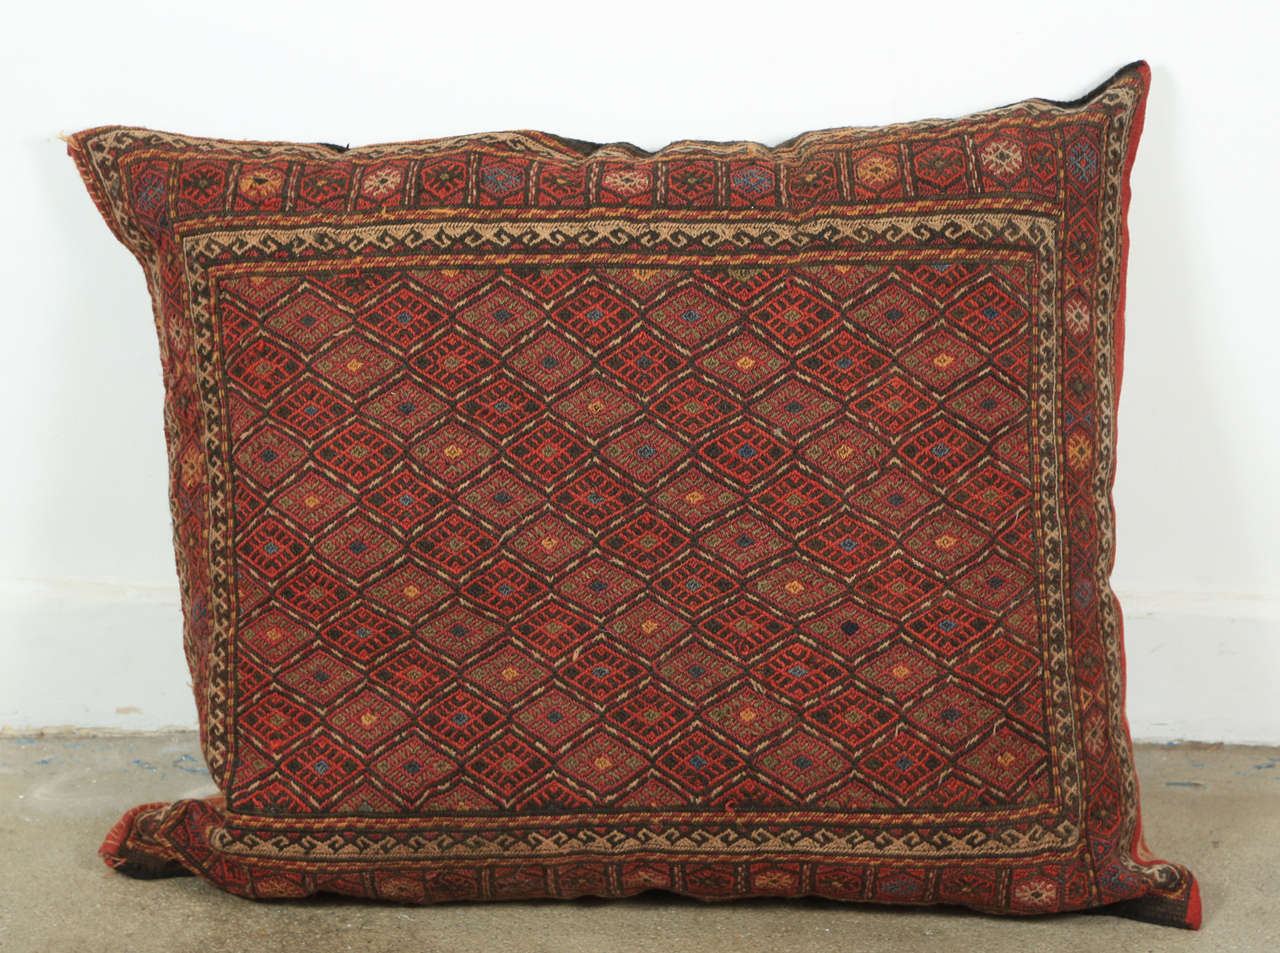 Turkish Kilim Floor Pillow : Middle Eastern Turkish Tribal Kilim Floor Pillow at 1stdibs